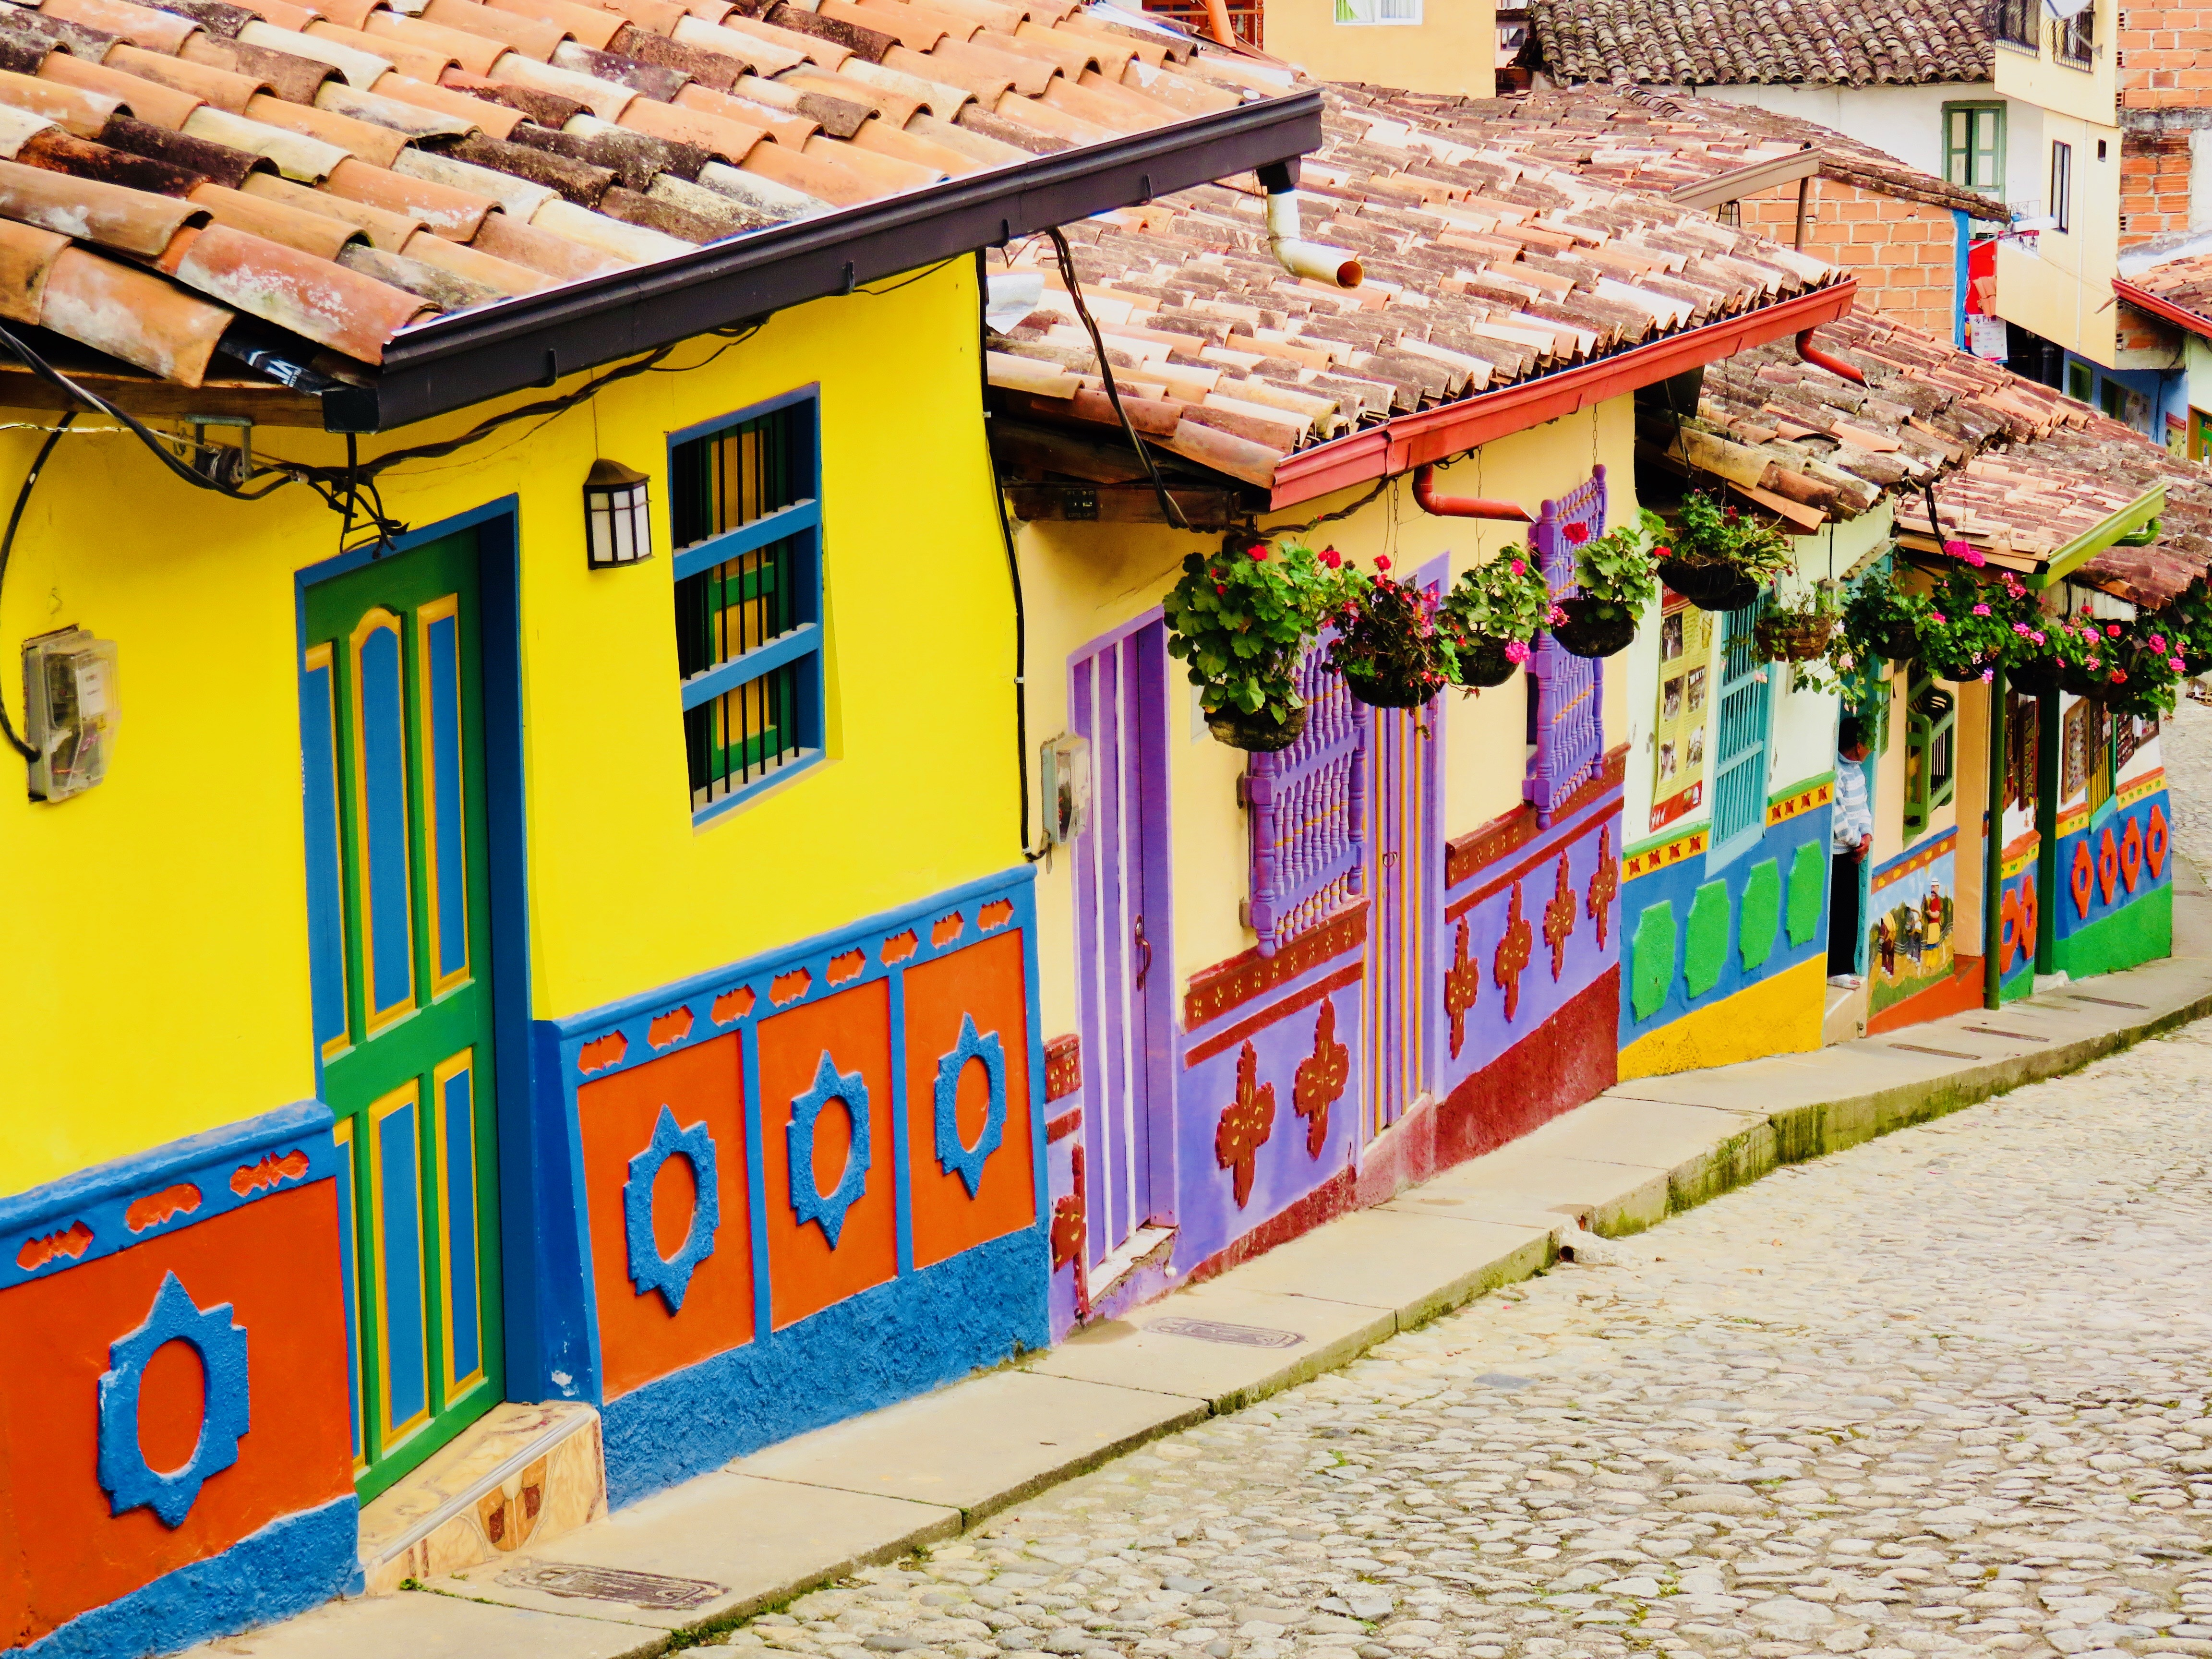 Street of Guatapé Colombia; Colombia Travel Blog Inspirations